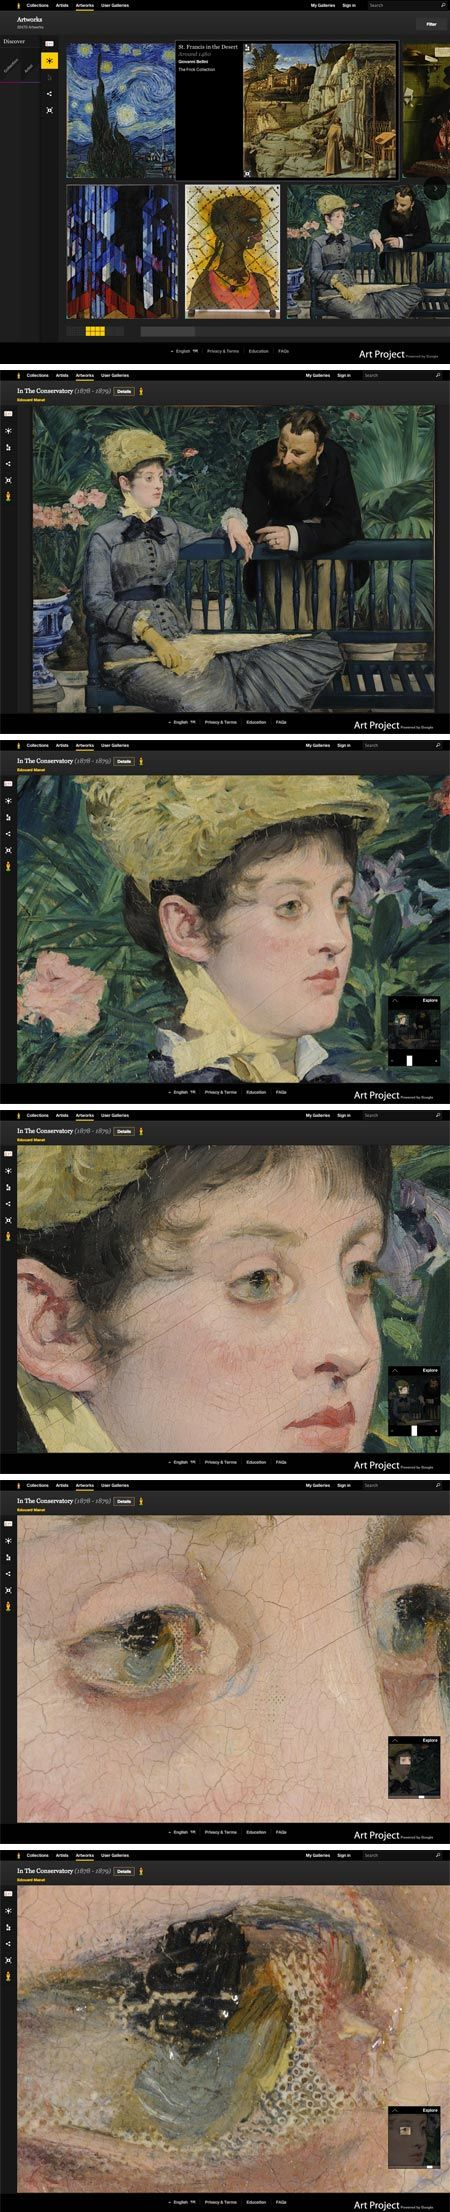 I love Charley Parker's linesandcolors.com!  Google Art Project updated with improved interface.